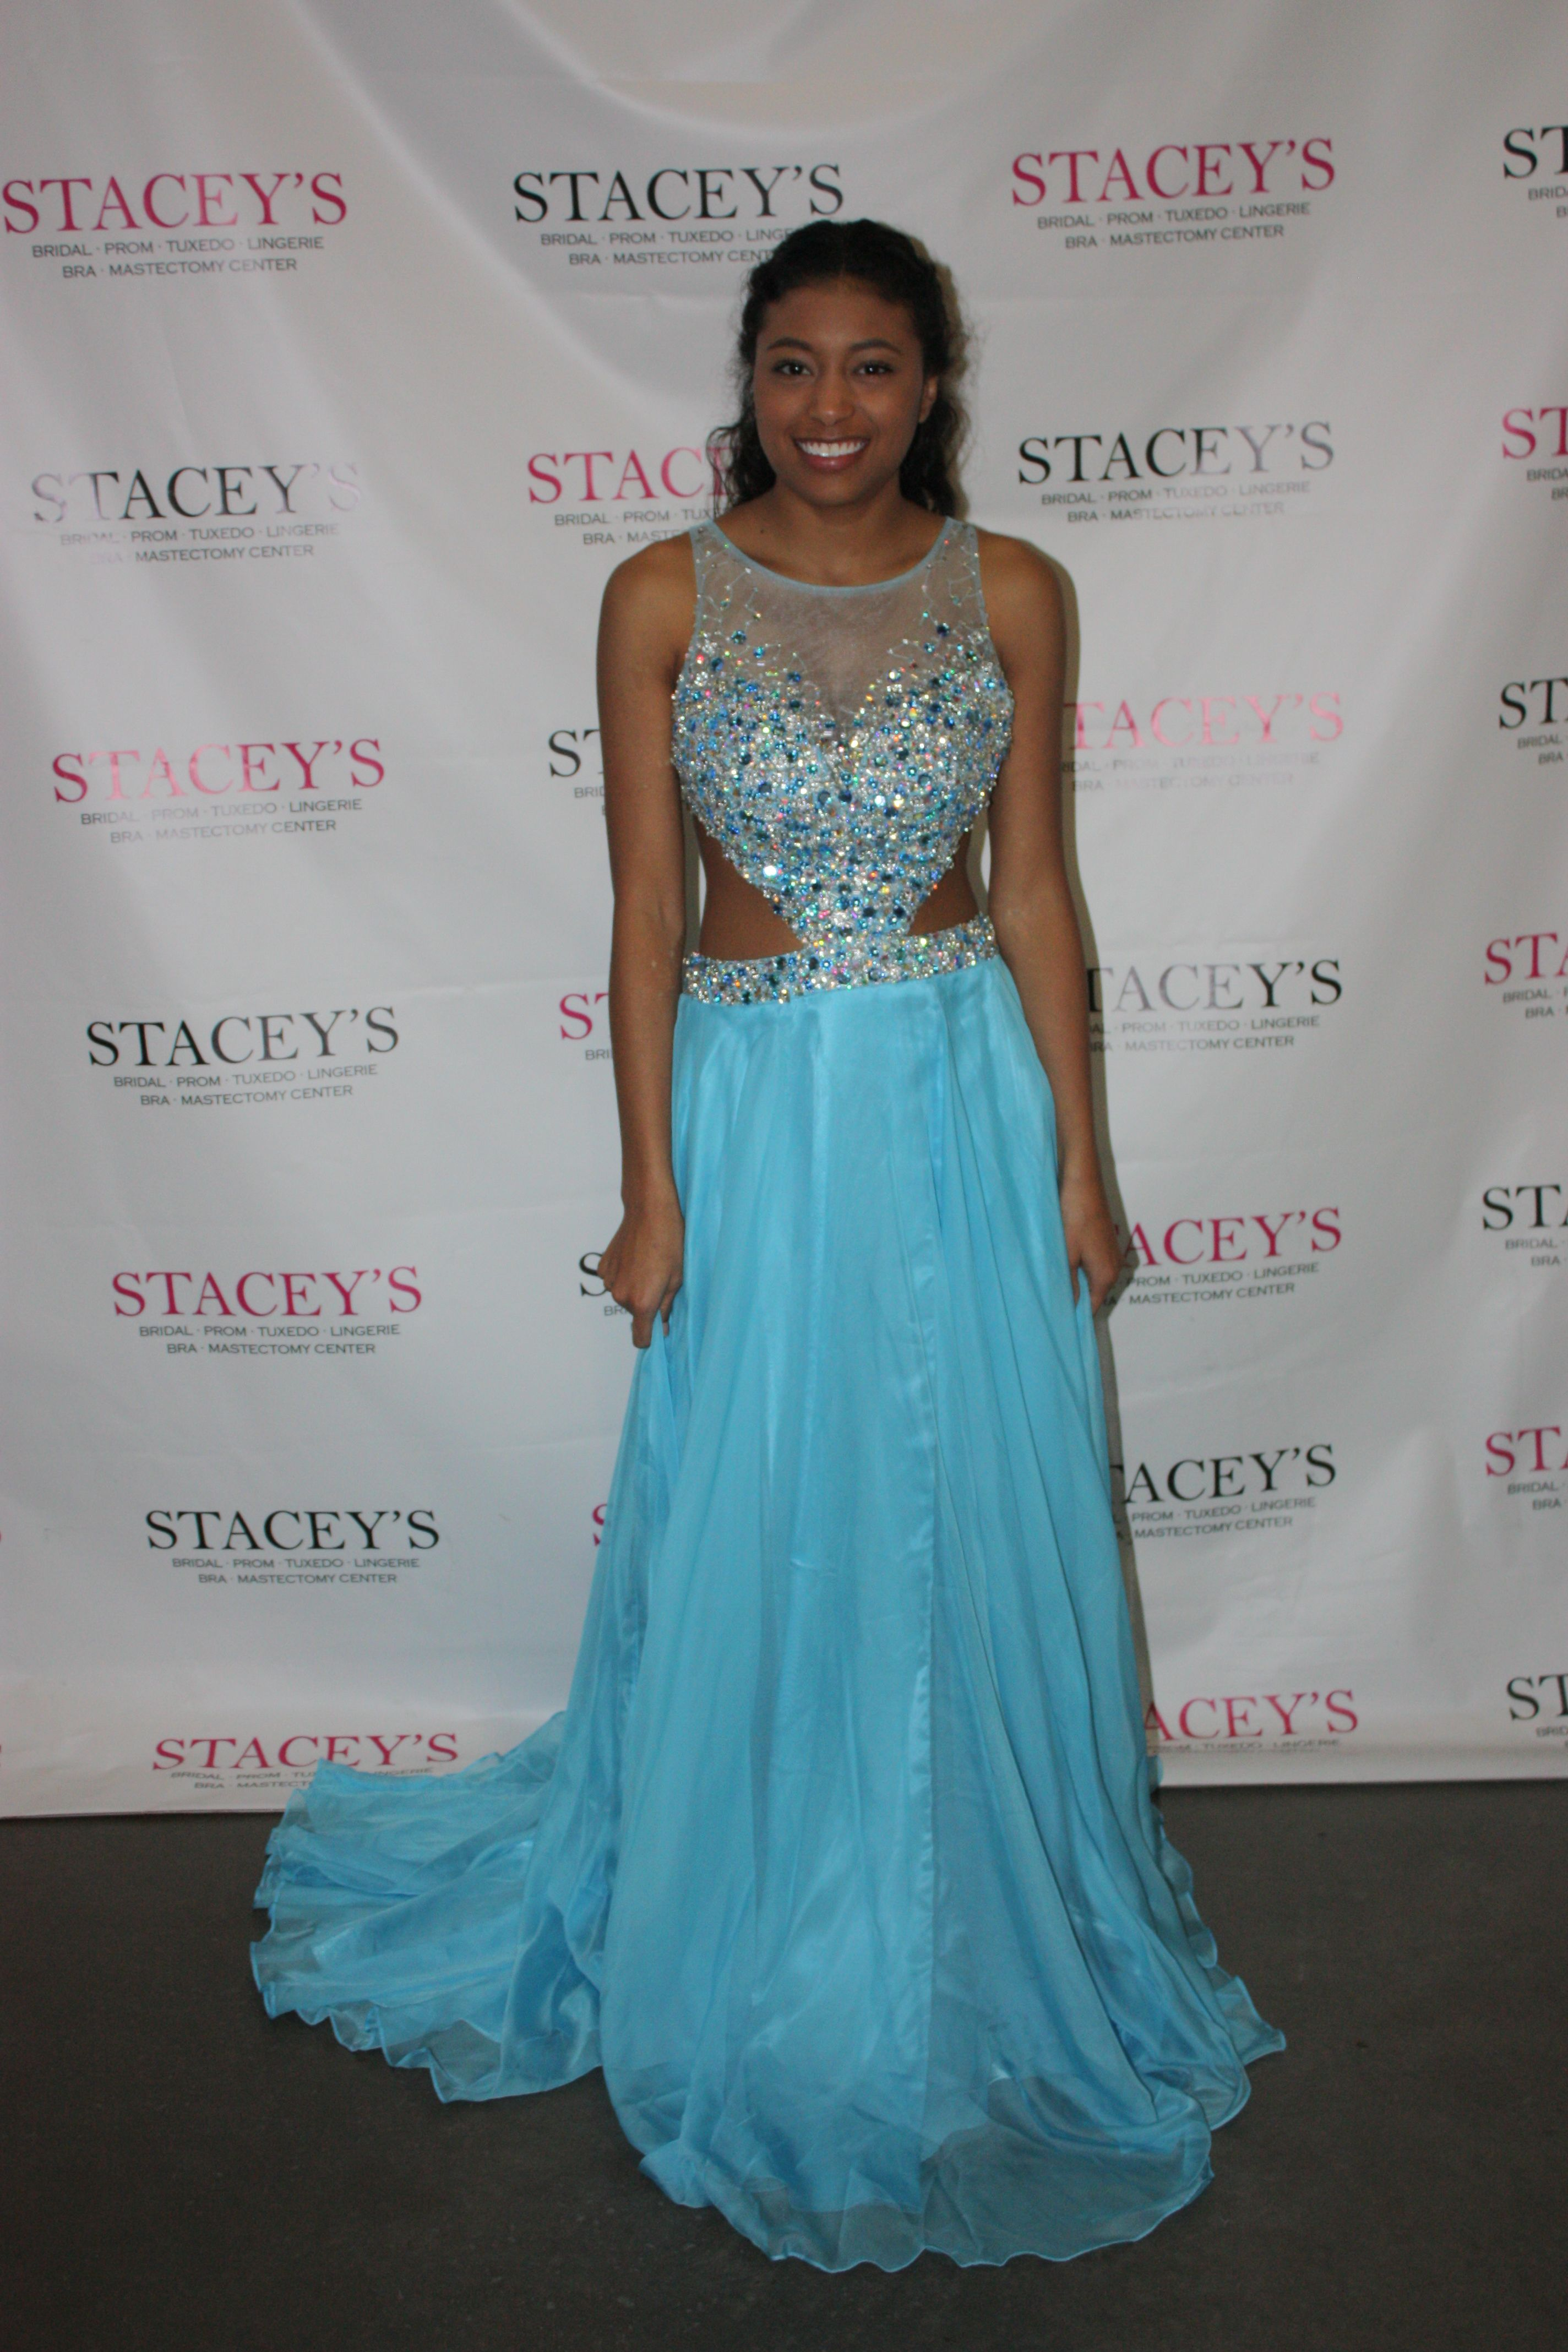 Come to Stacey\'s Prom and find your dress! #staceysprom | Prom ...